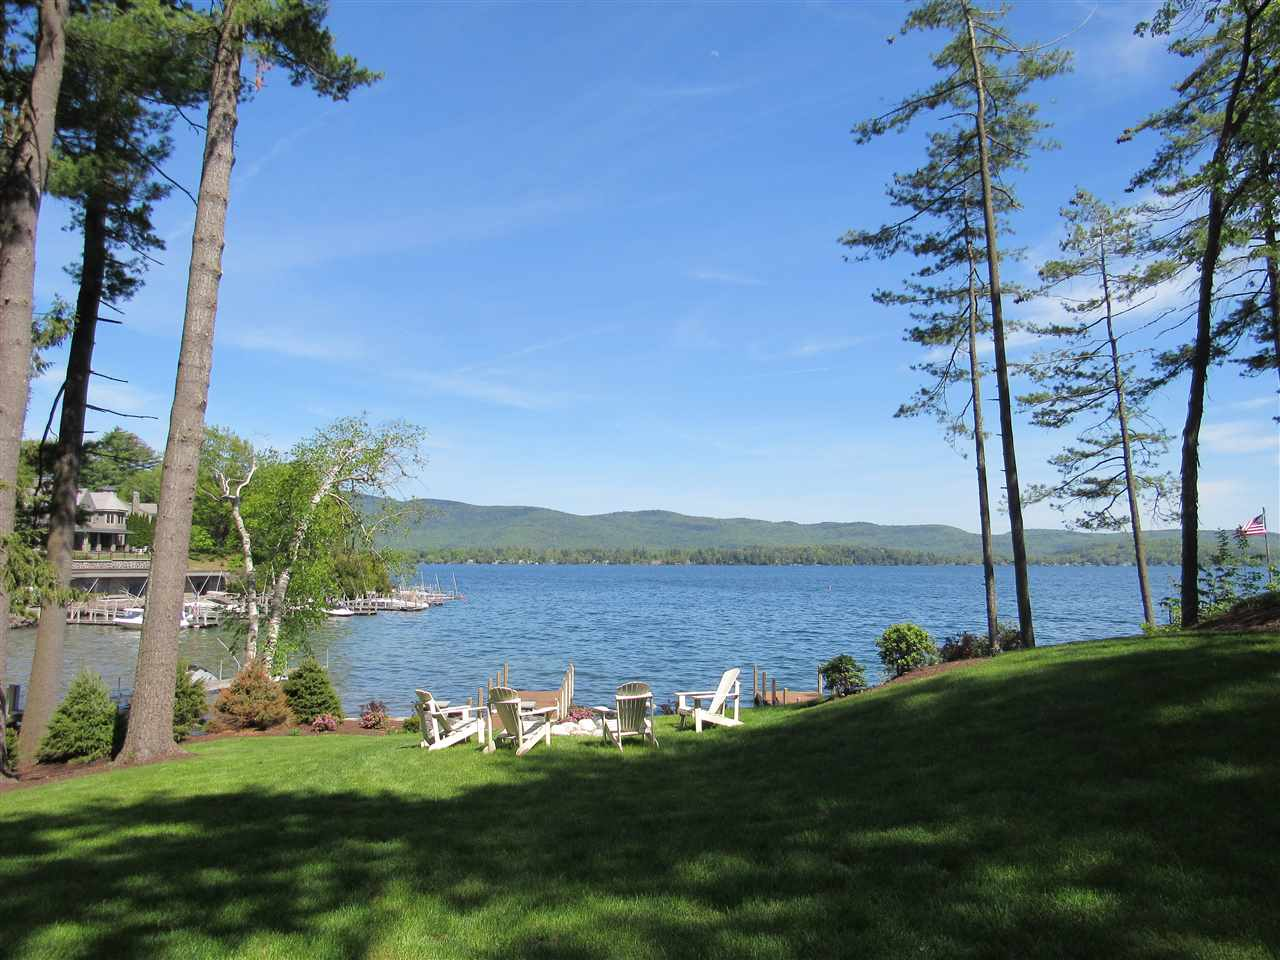 Lake George image 44